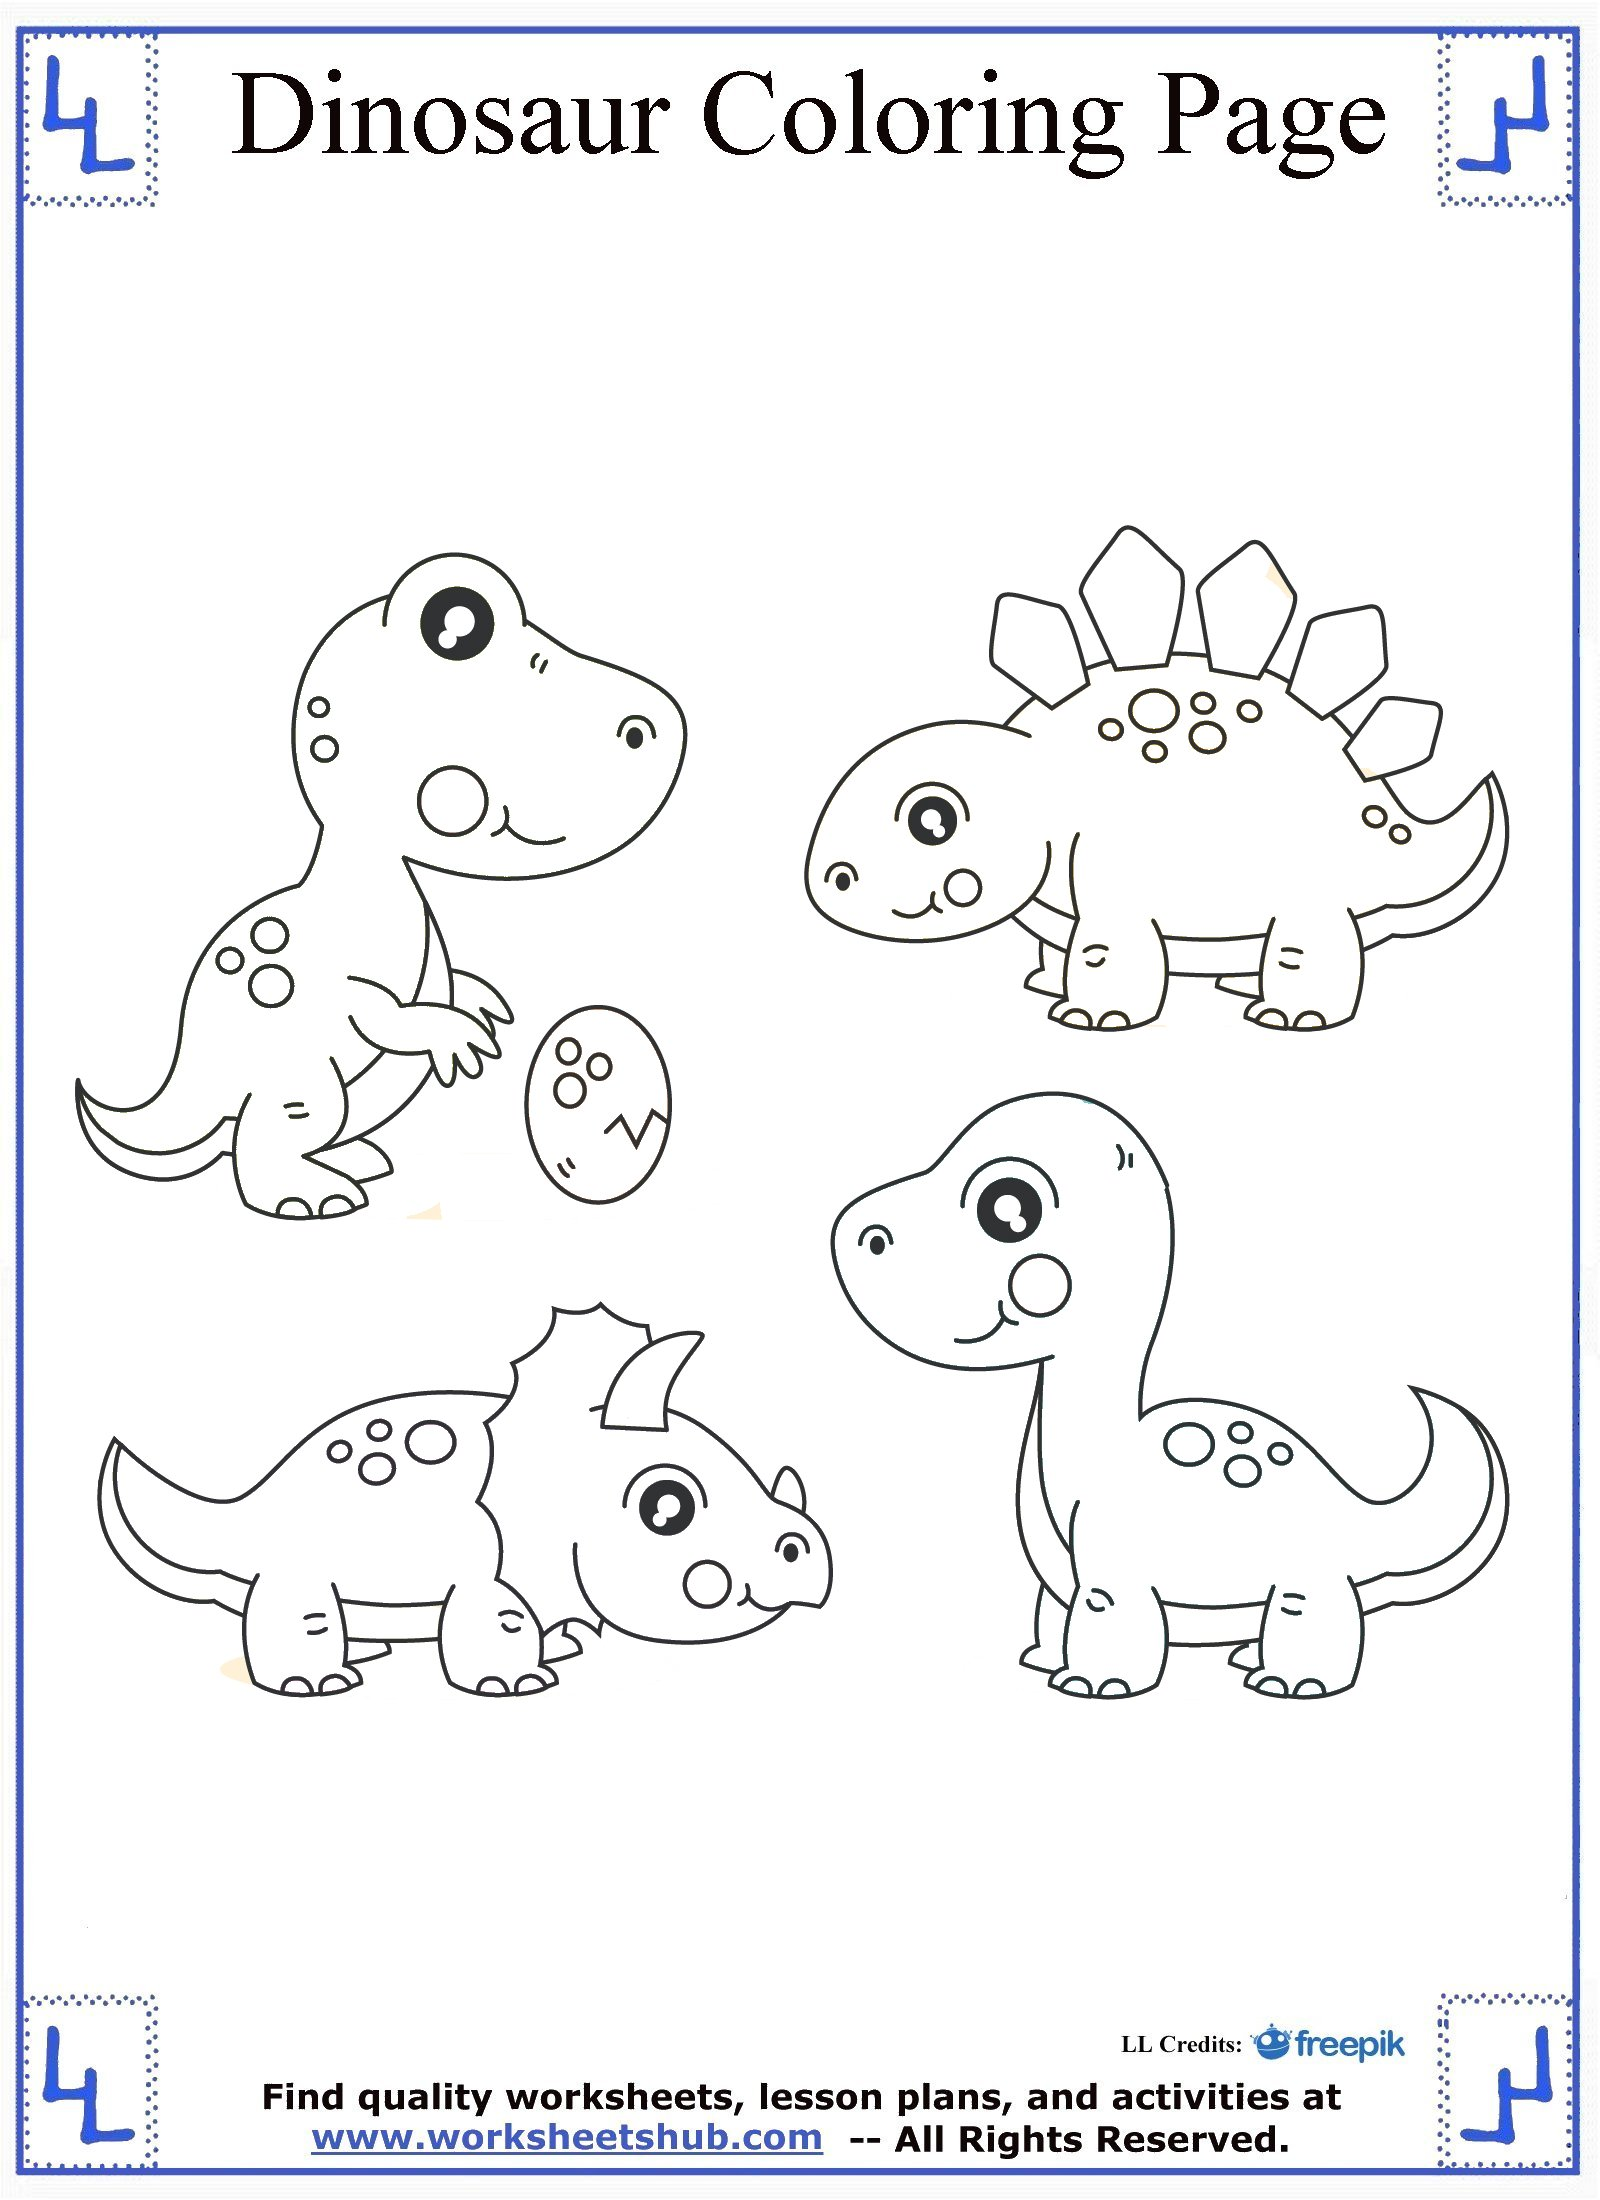 Dinosaur coloring pages Coloring book for kindergarten pdf